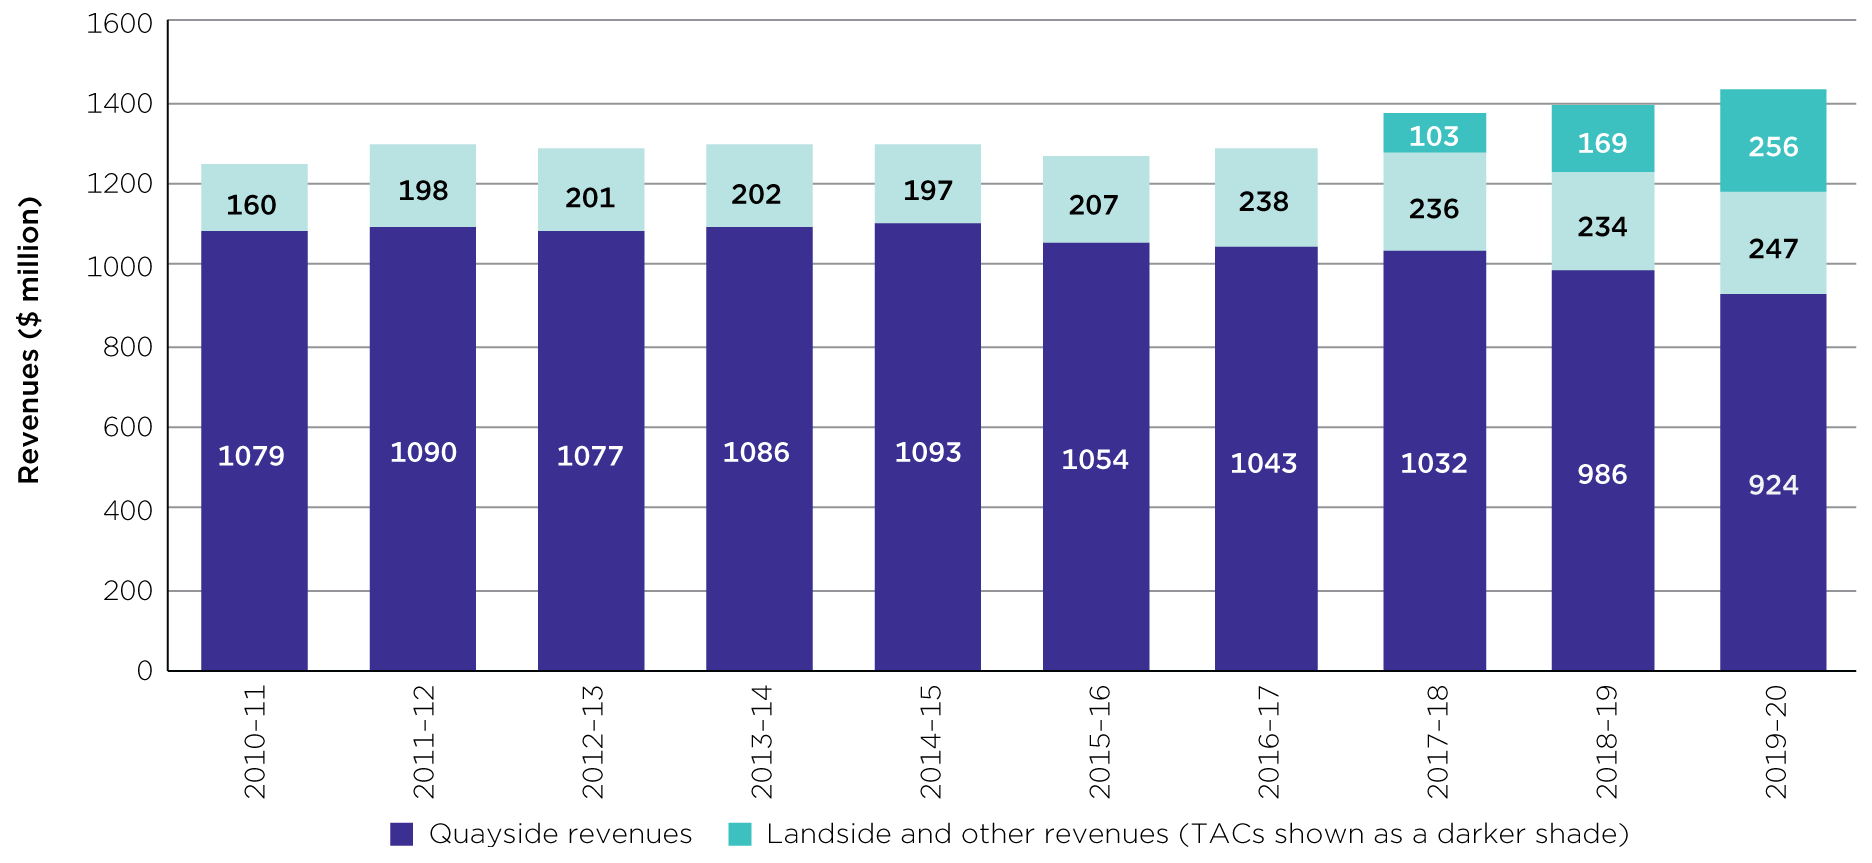 Bar chart showing quayside revenues, and landside and other revenues. The image is Figure 4.2 from page 30 of the Container stevedoring monitoring report 2019-20